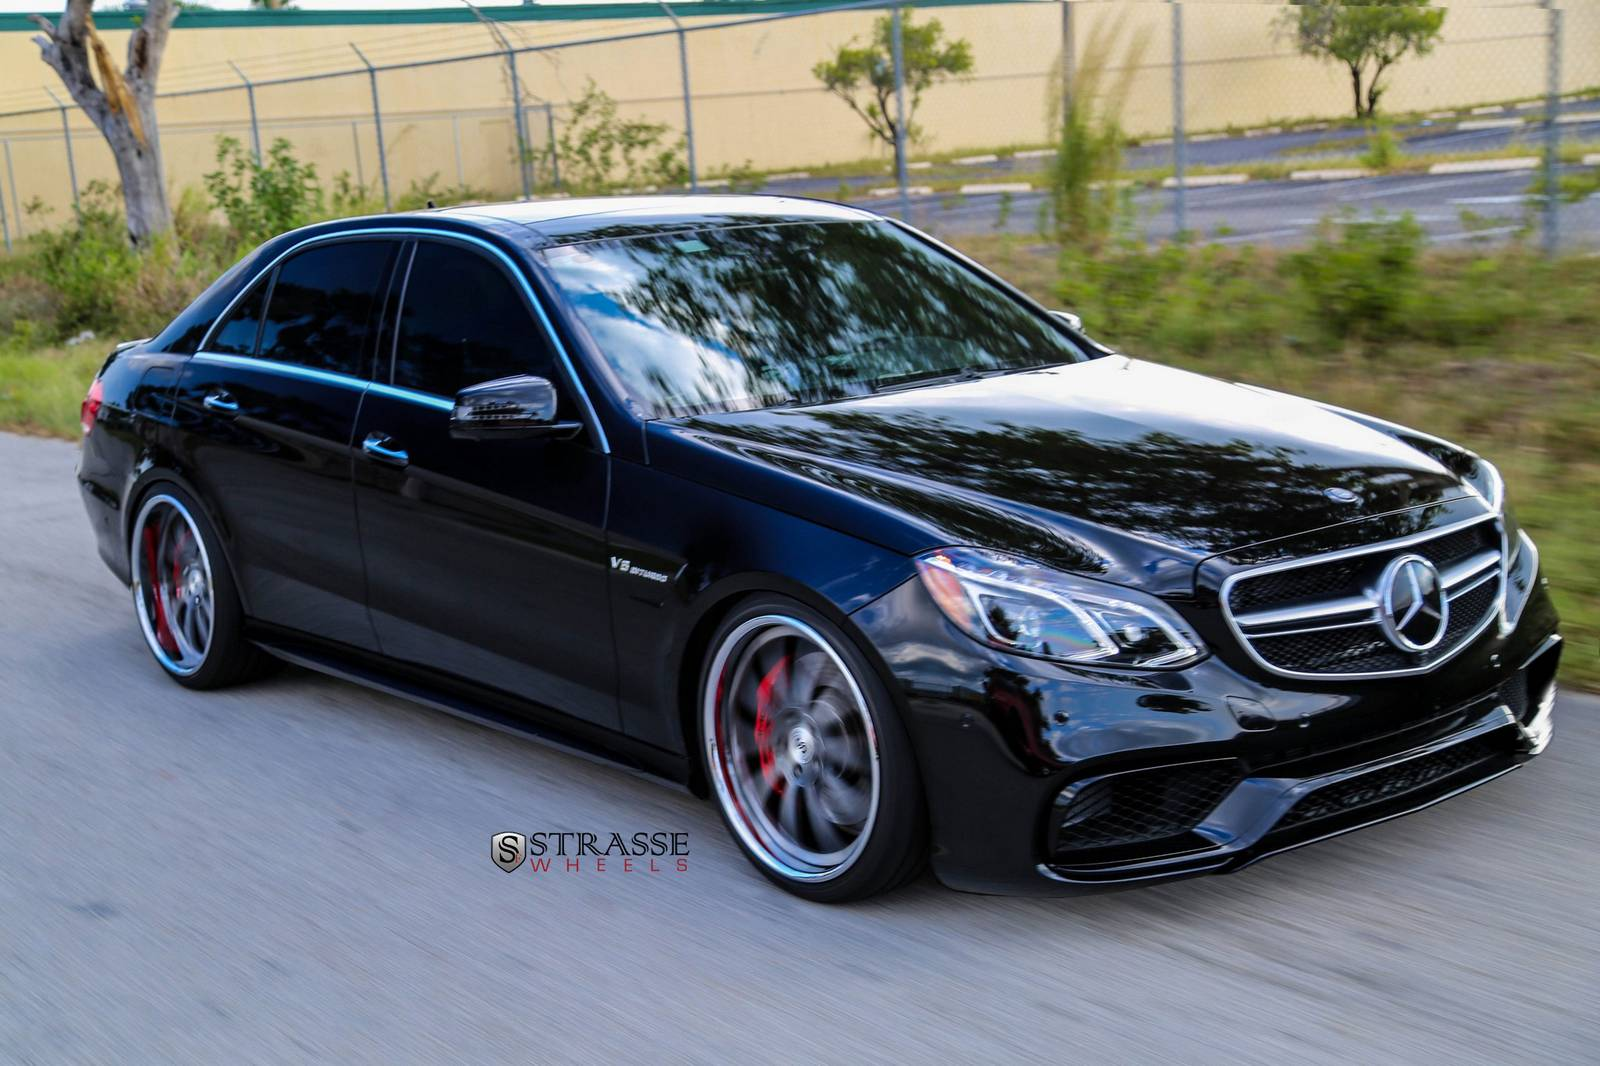 2014 mercedes benz e63 amg s by titanio automotive for Mercedes benz e63 s amg